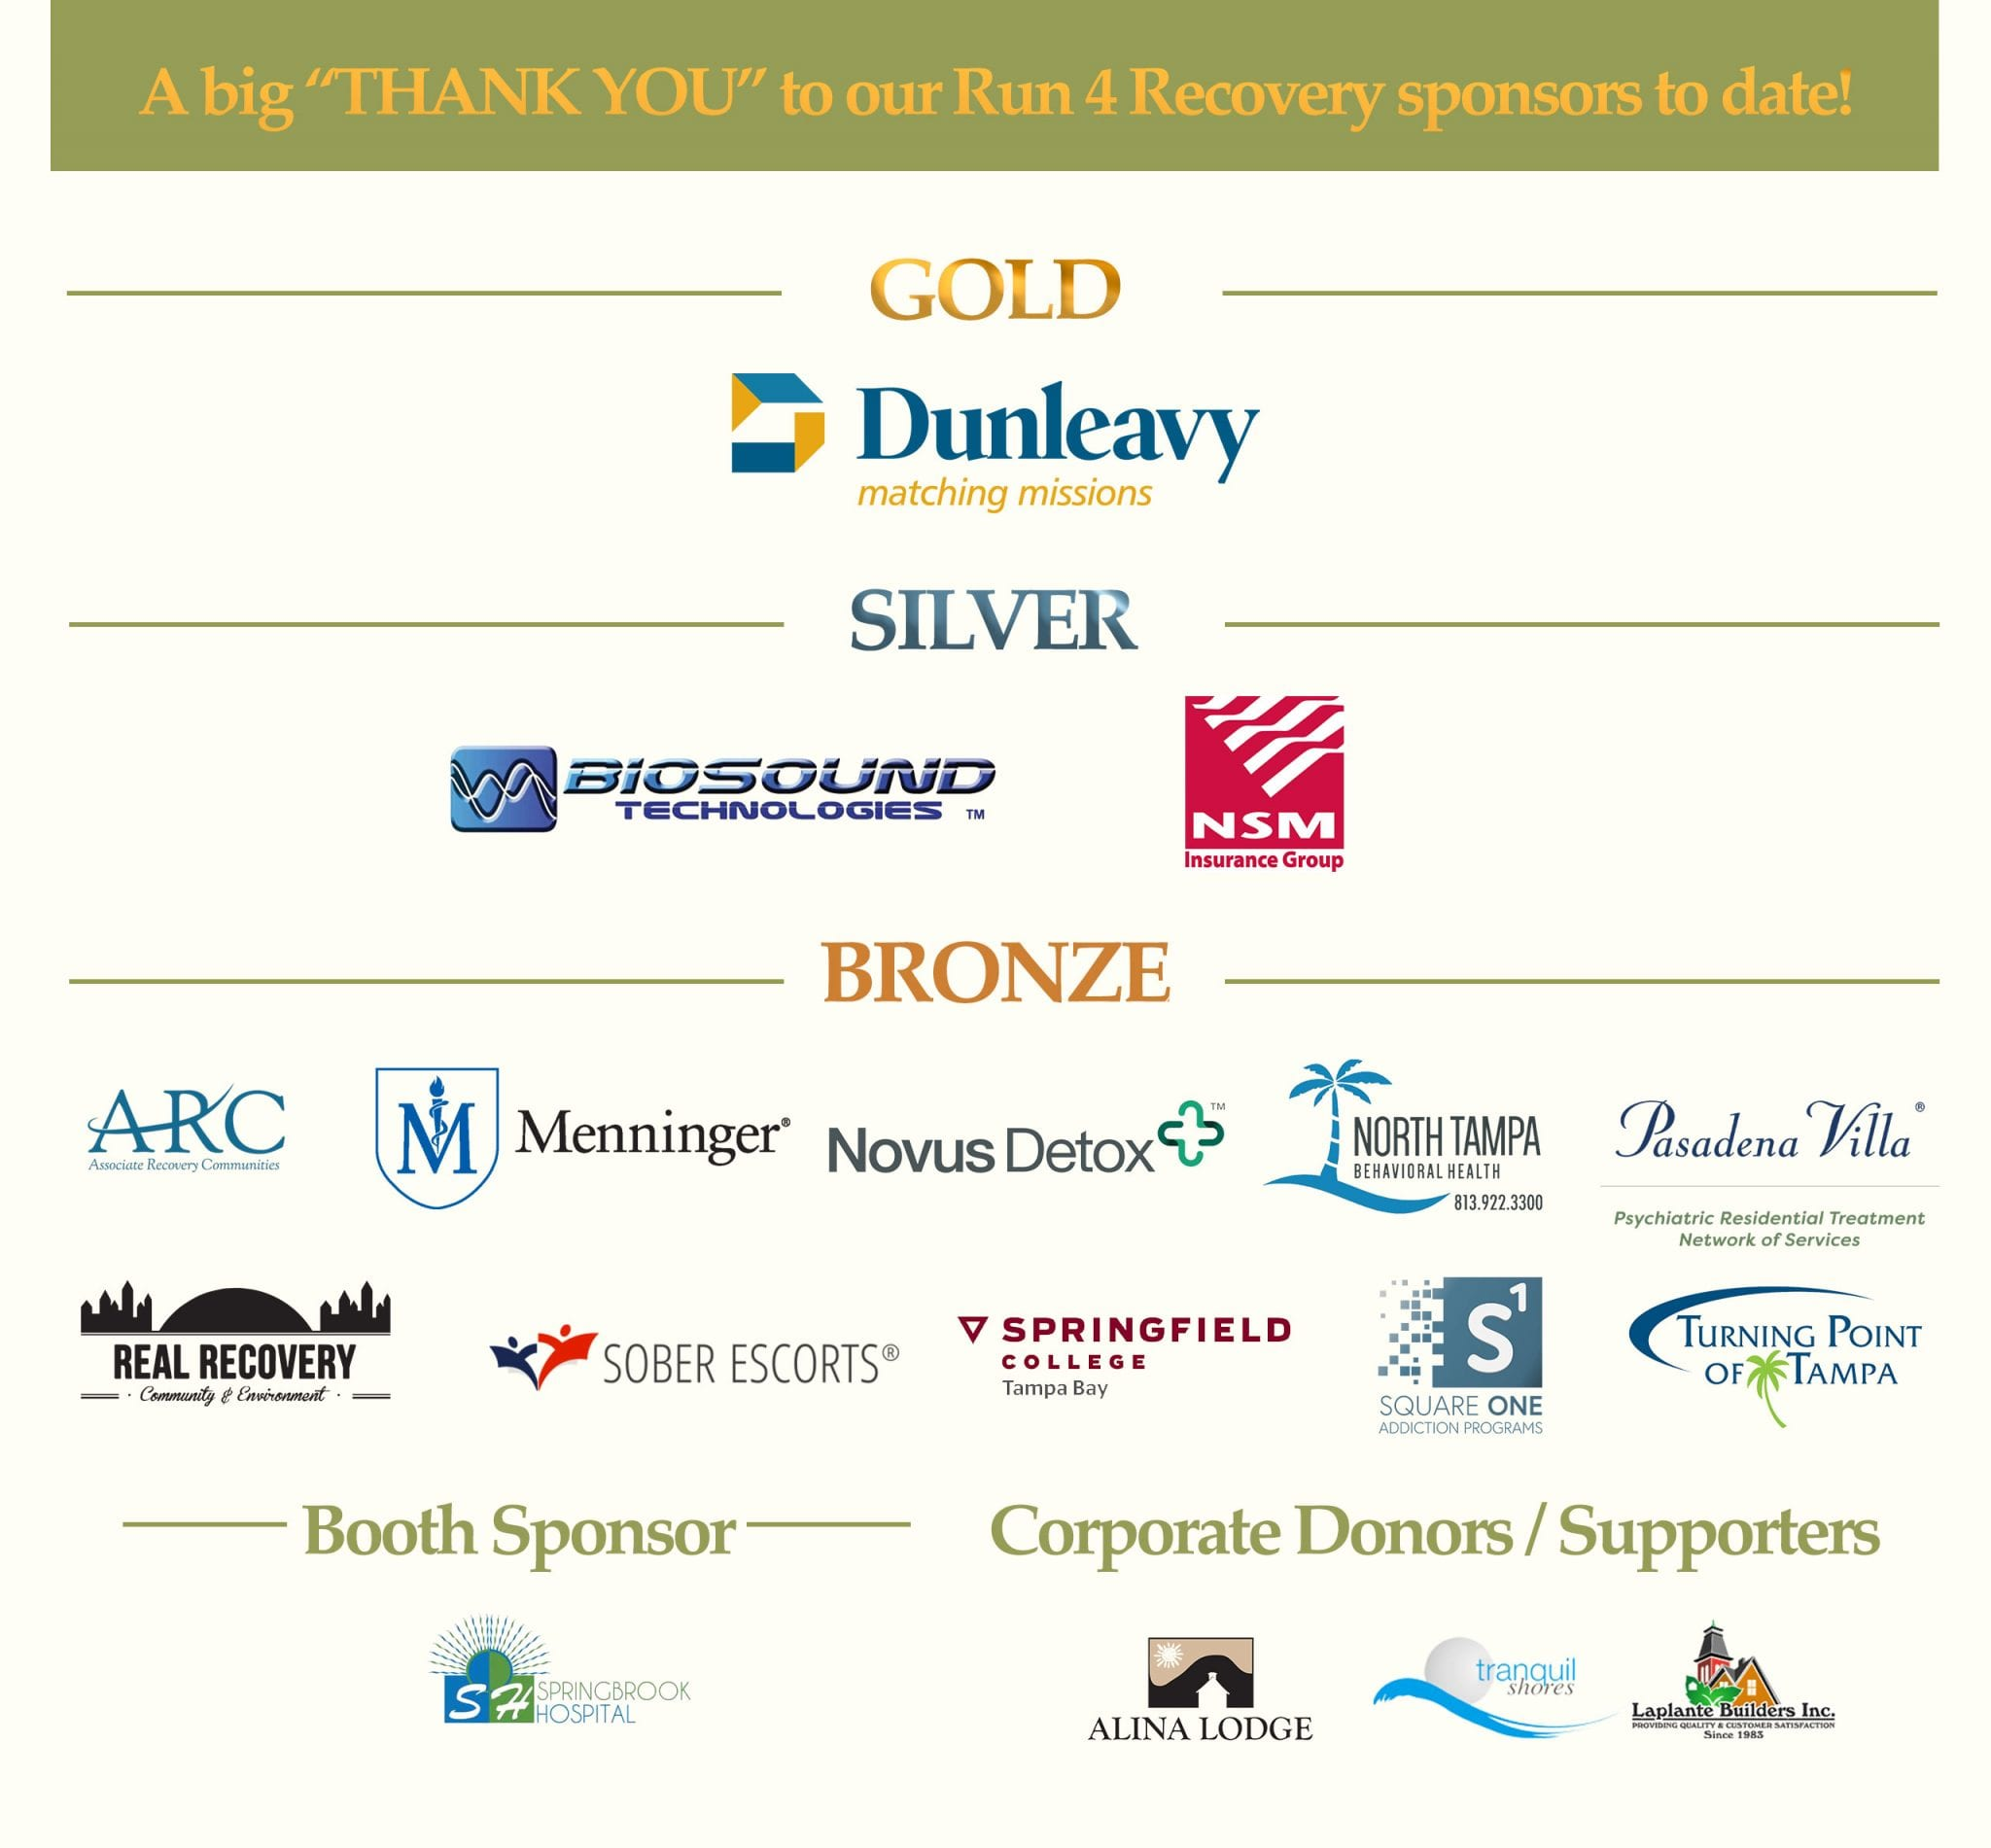 2018 Run 4 Recovery Sponsors and Supporters